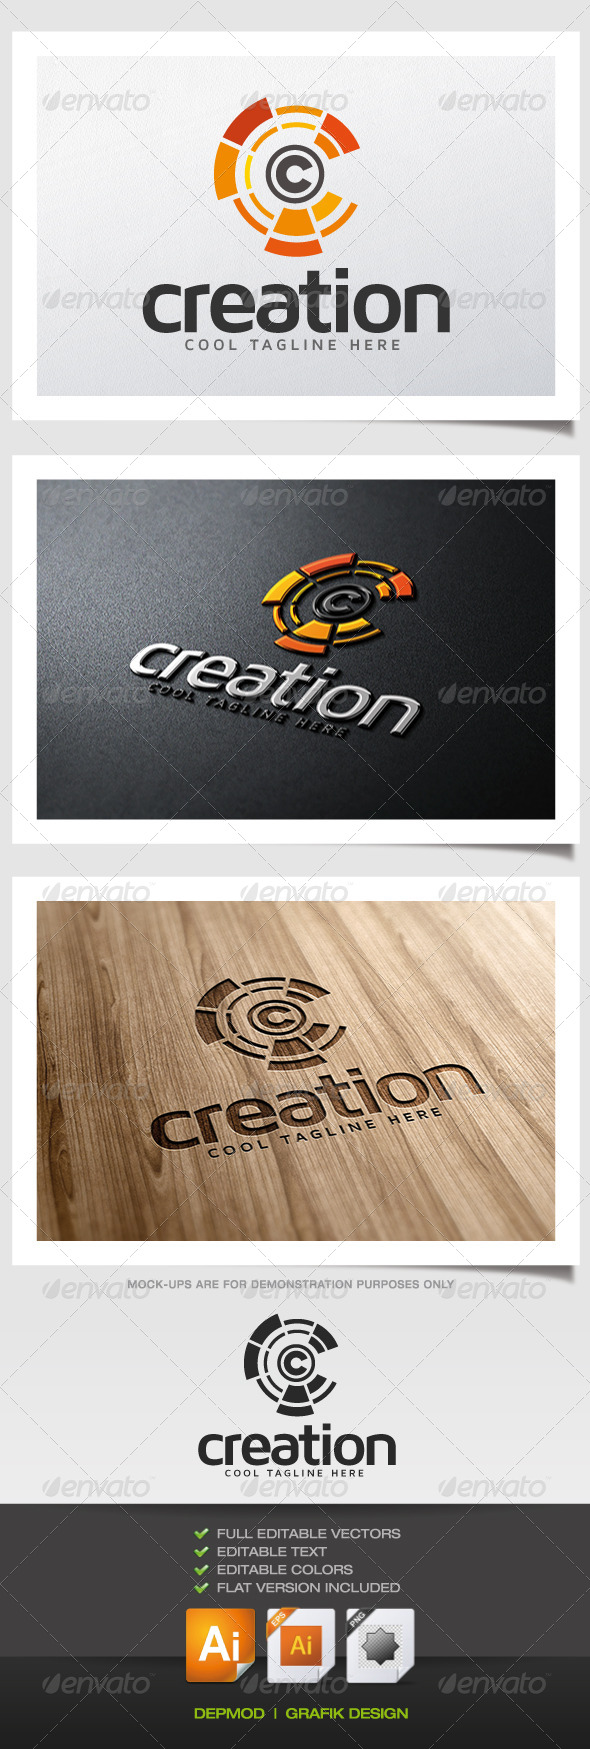 GraphicRiver Creation Logo 5523596